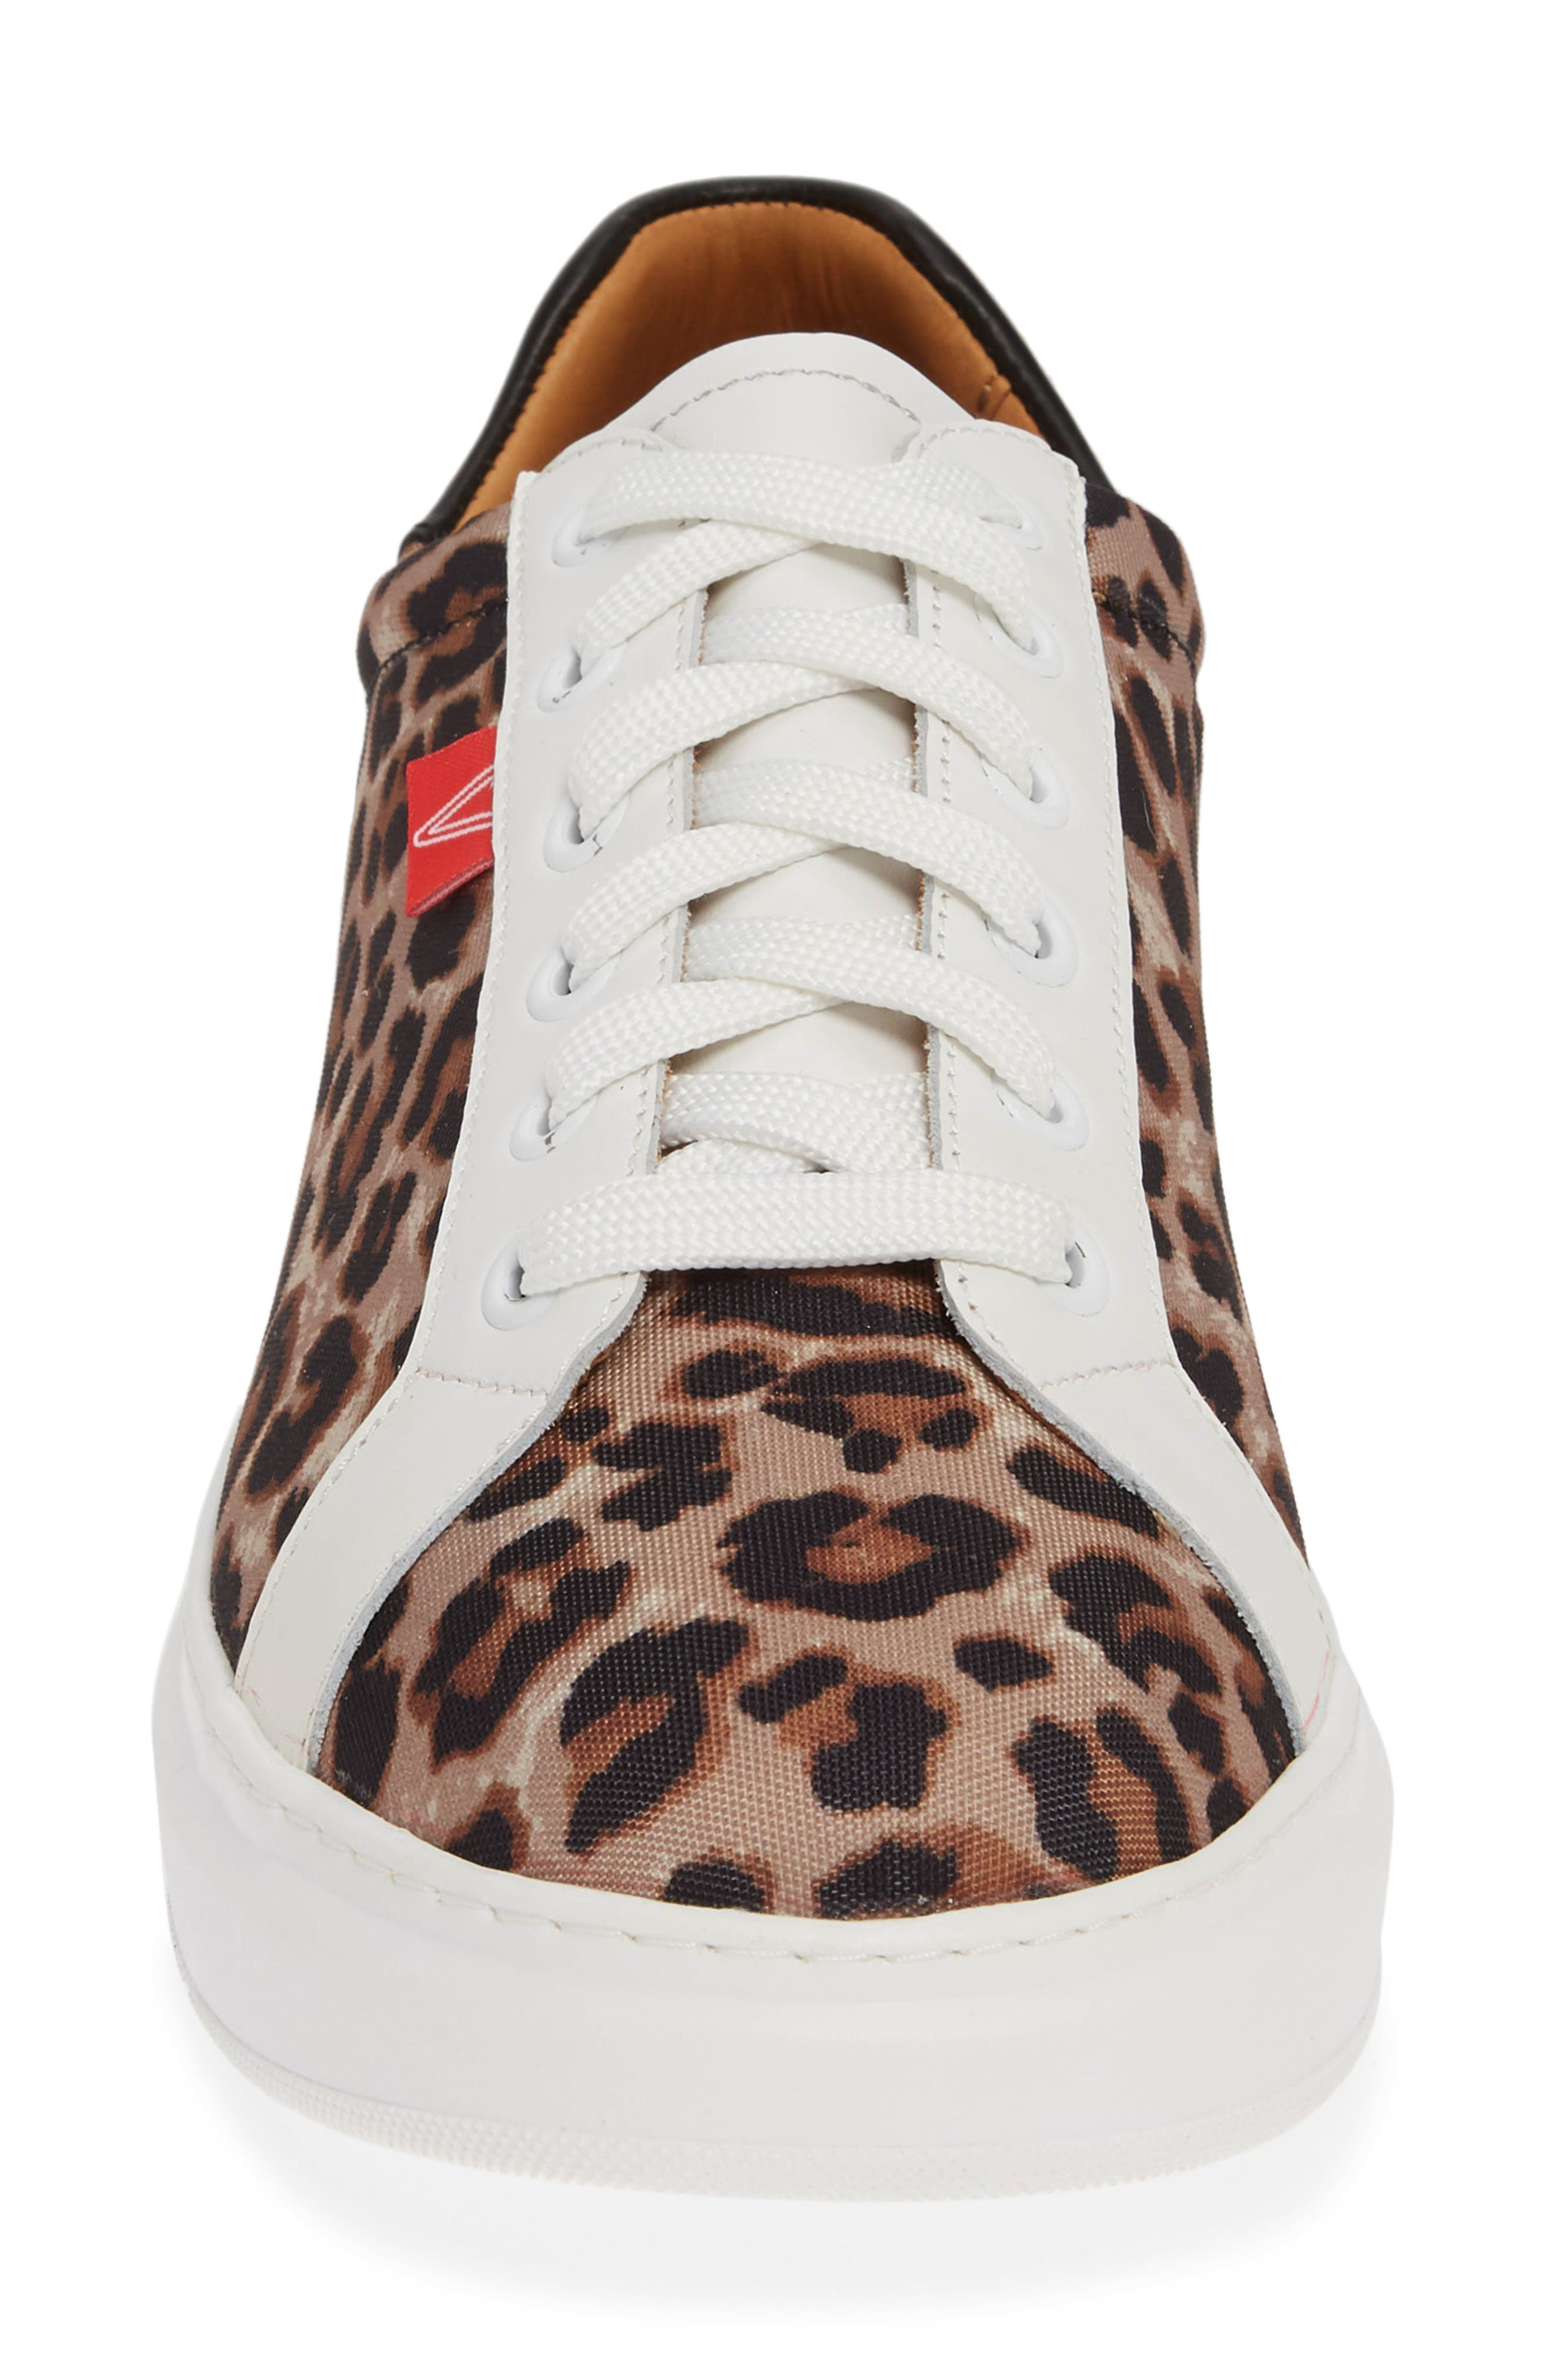 VERONICA BEARD, Daelyn Leopard Print Sneaker, Alternate thumbnail 4, color, LEOPARD